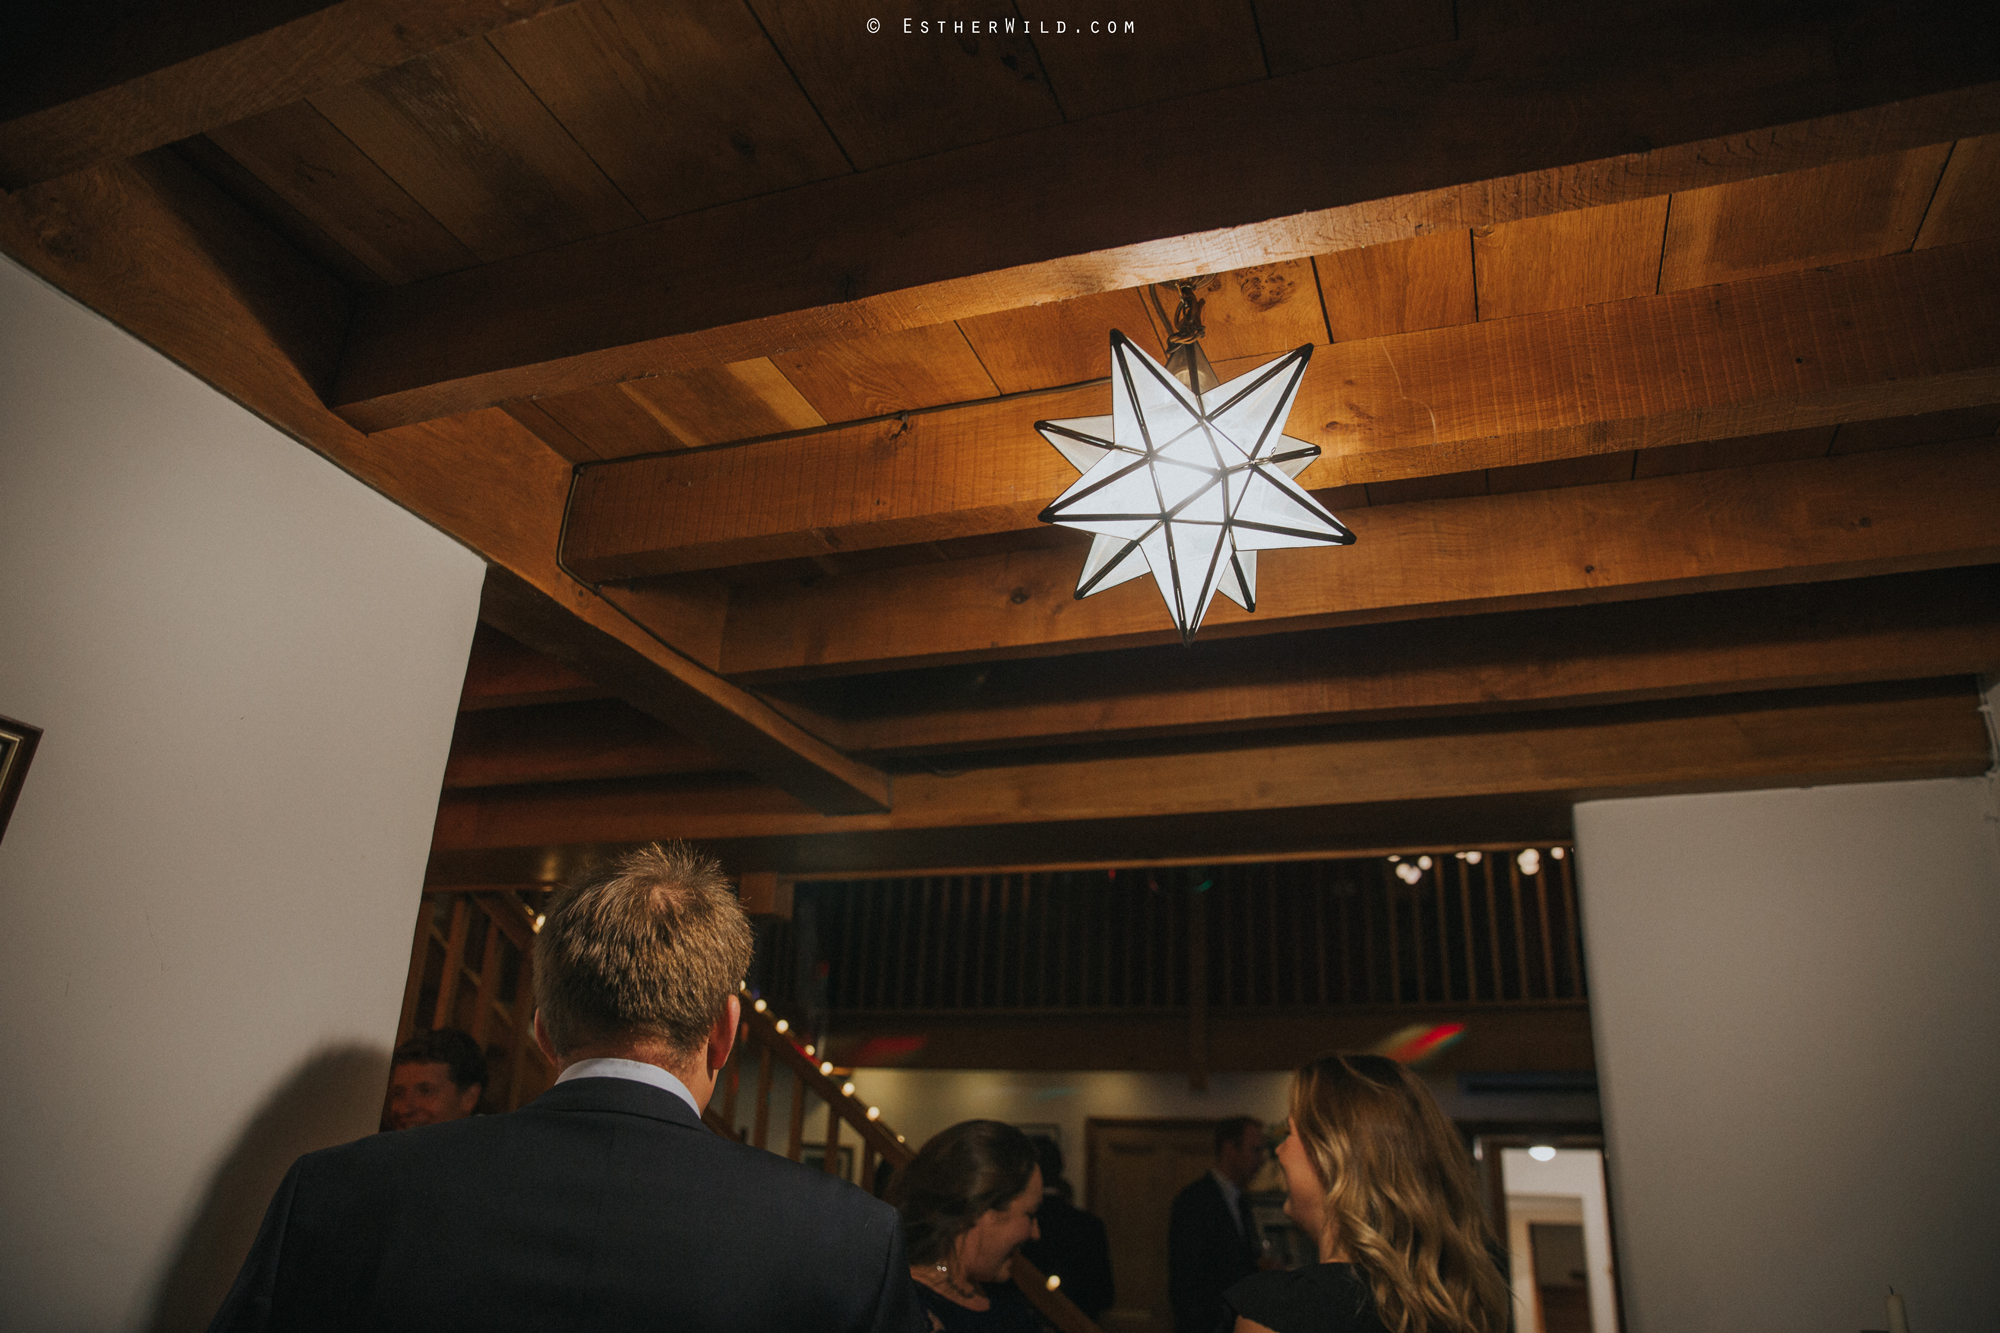 Wedding_Photographer_Chaucer_Barn_Holt_Norfolk_Country_Rustic_Venue_Copyright_Esther_Wild_IMG_2324.jpg